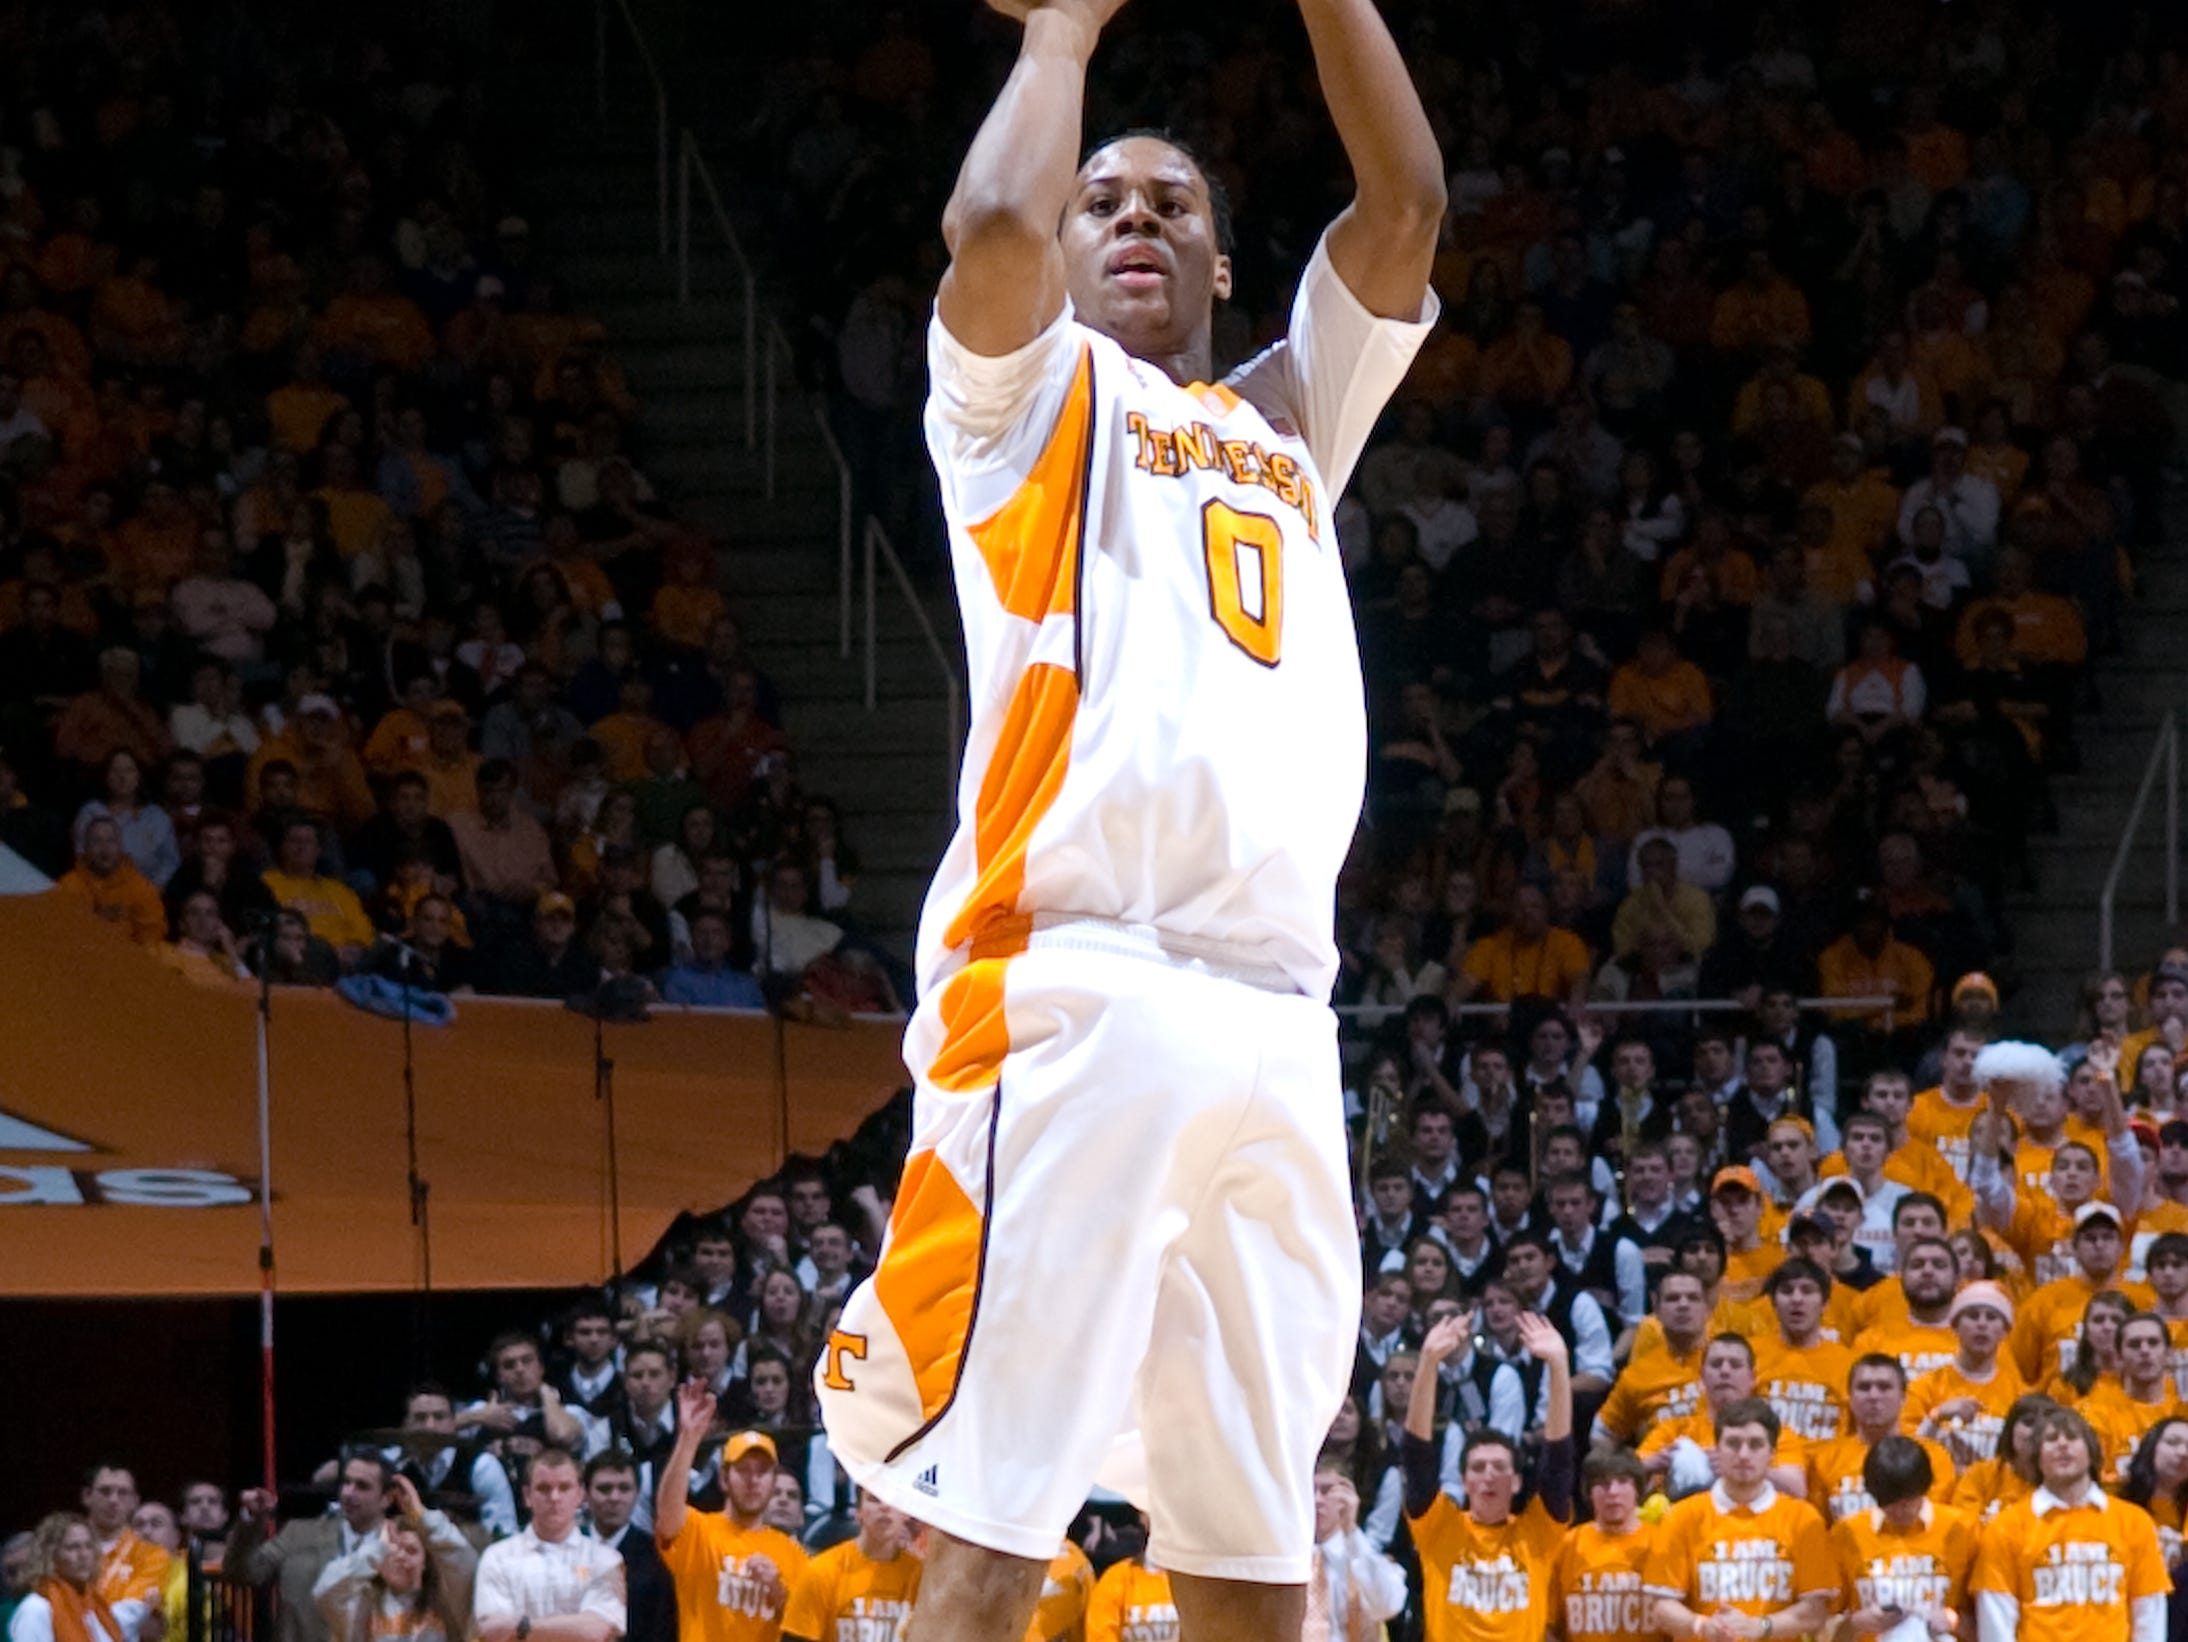 Renaldo Woolridge scores his first 3-point shot against Kansas. Tennessee upsets number one ranked  Kansas 76-68 at Thompson-Boling Arena  Sunday, Jan 10, 2010.